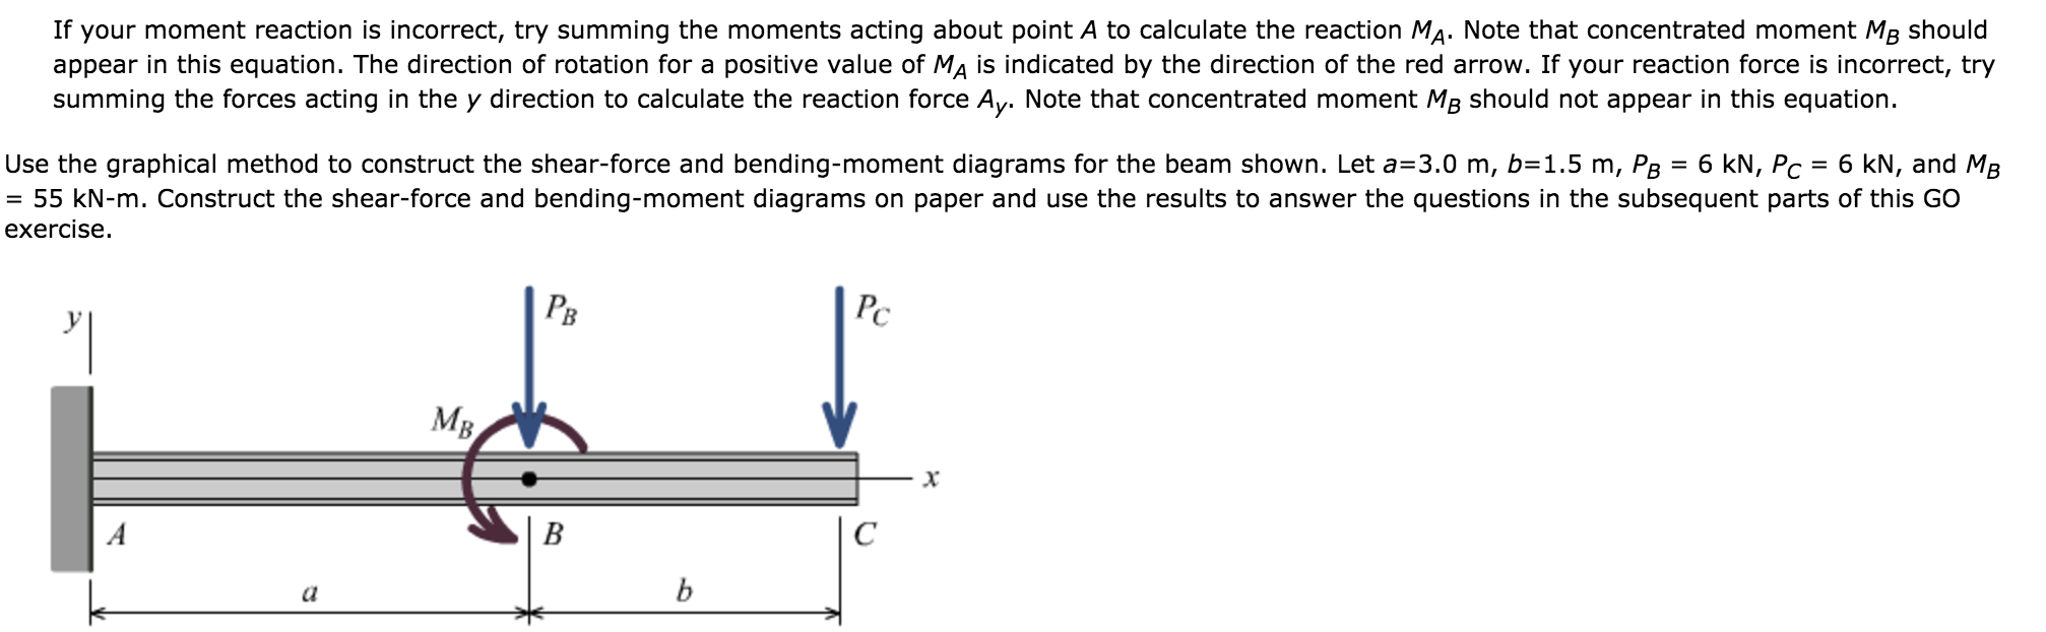 Solved Use The Graphical Method To Construct Shear Fo Force And Bending Moment Diagram If Your Reaction Is Incorrect Try Summing Moments Acting About Point A